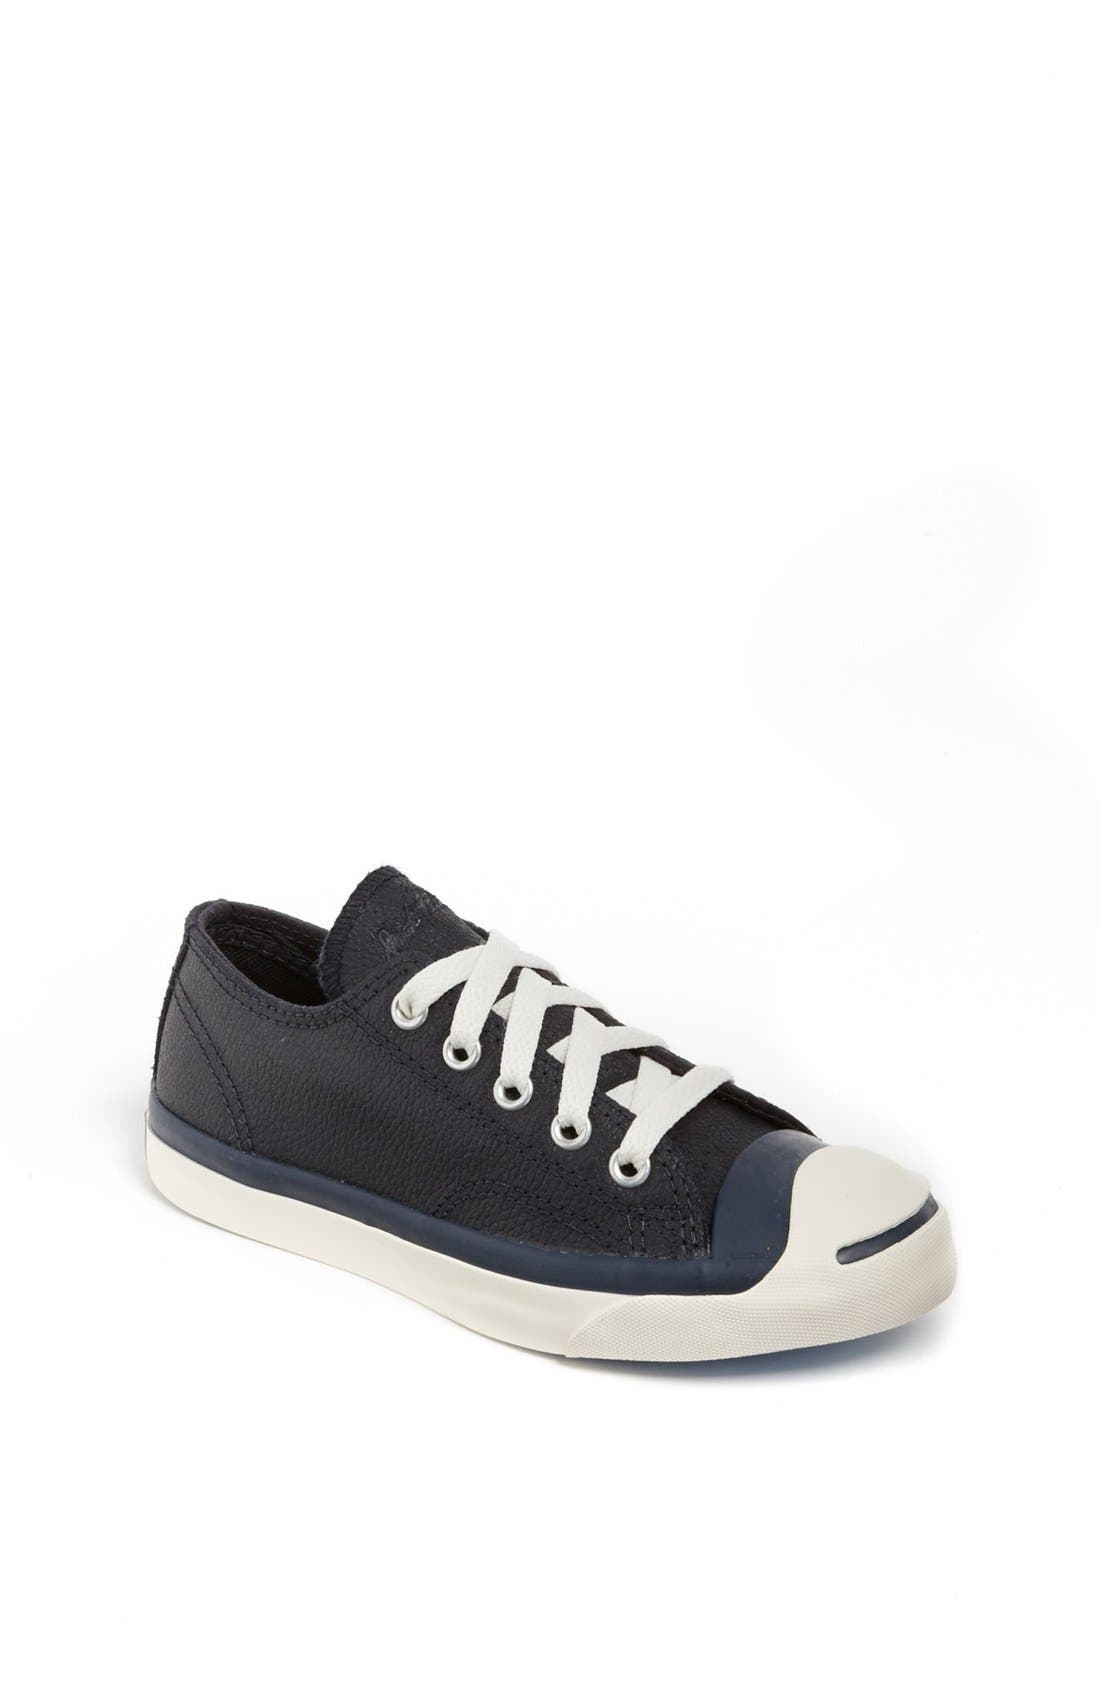 Alternate Image 1 Selected - Converse 'Jack Purcell' Sneaker (Toddler, Little Kid & Big Kid)